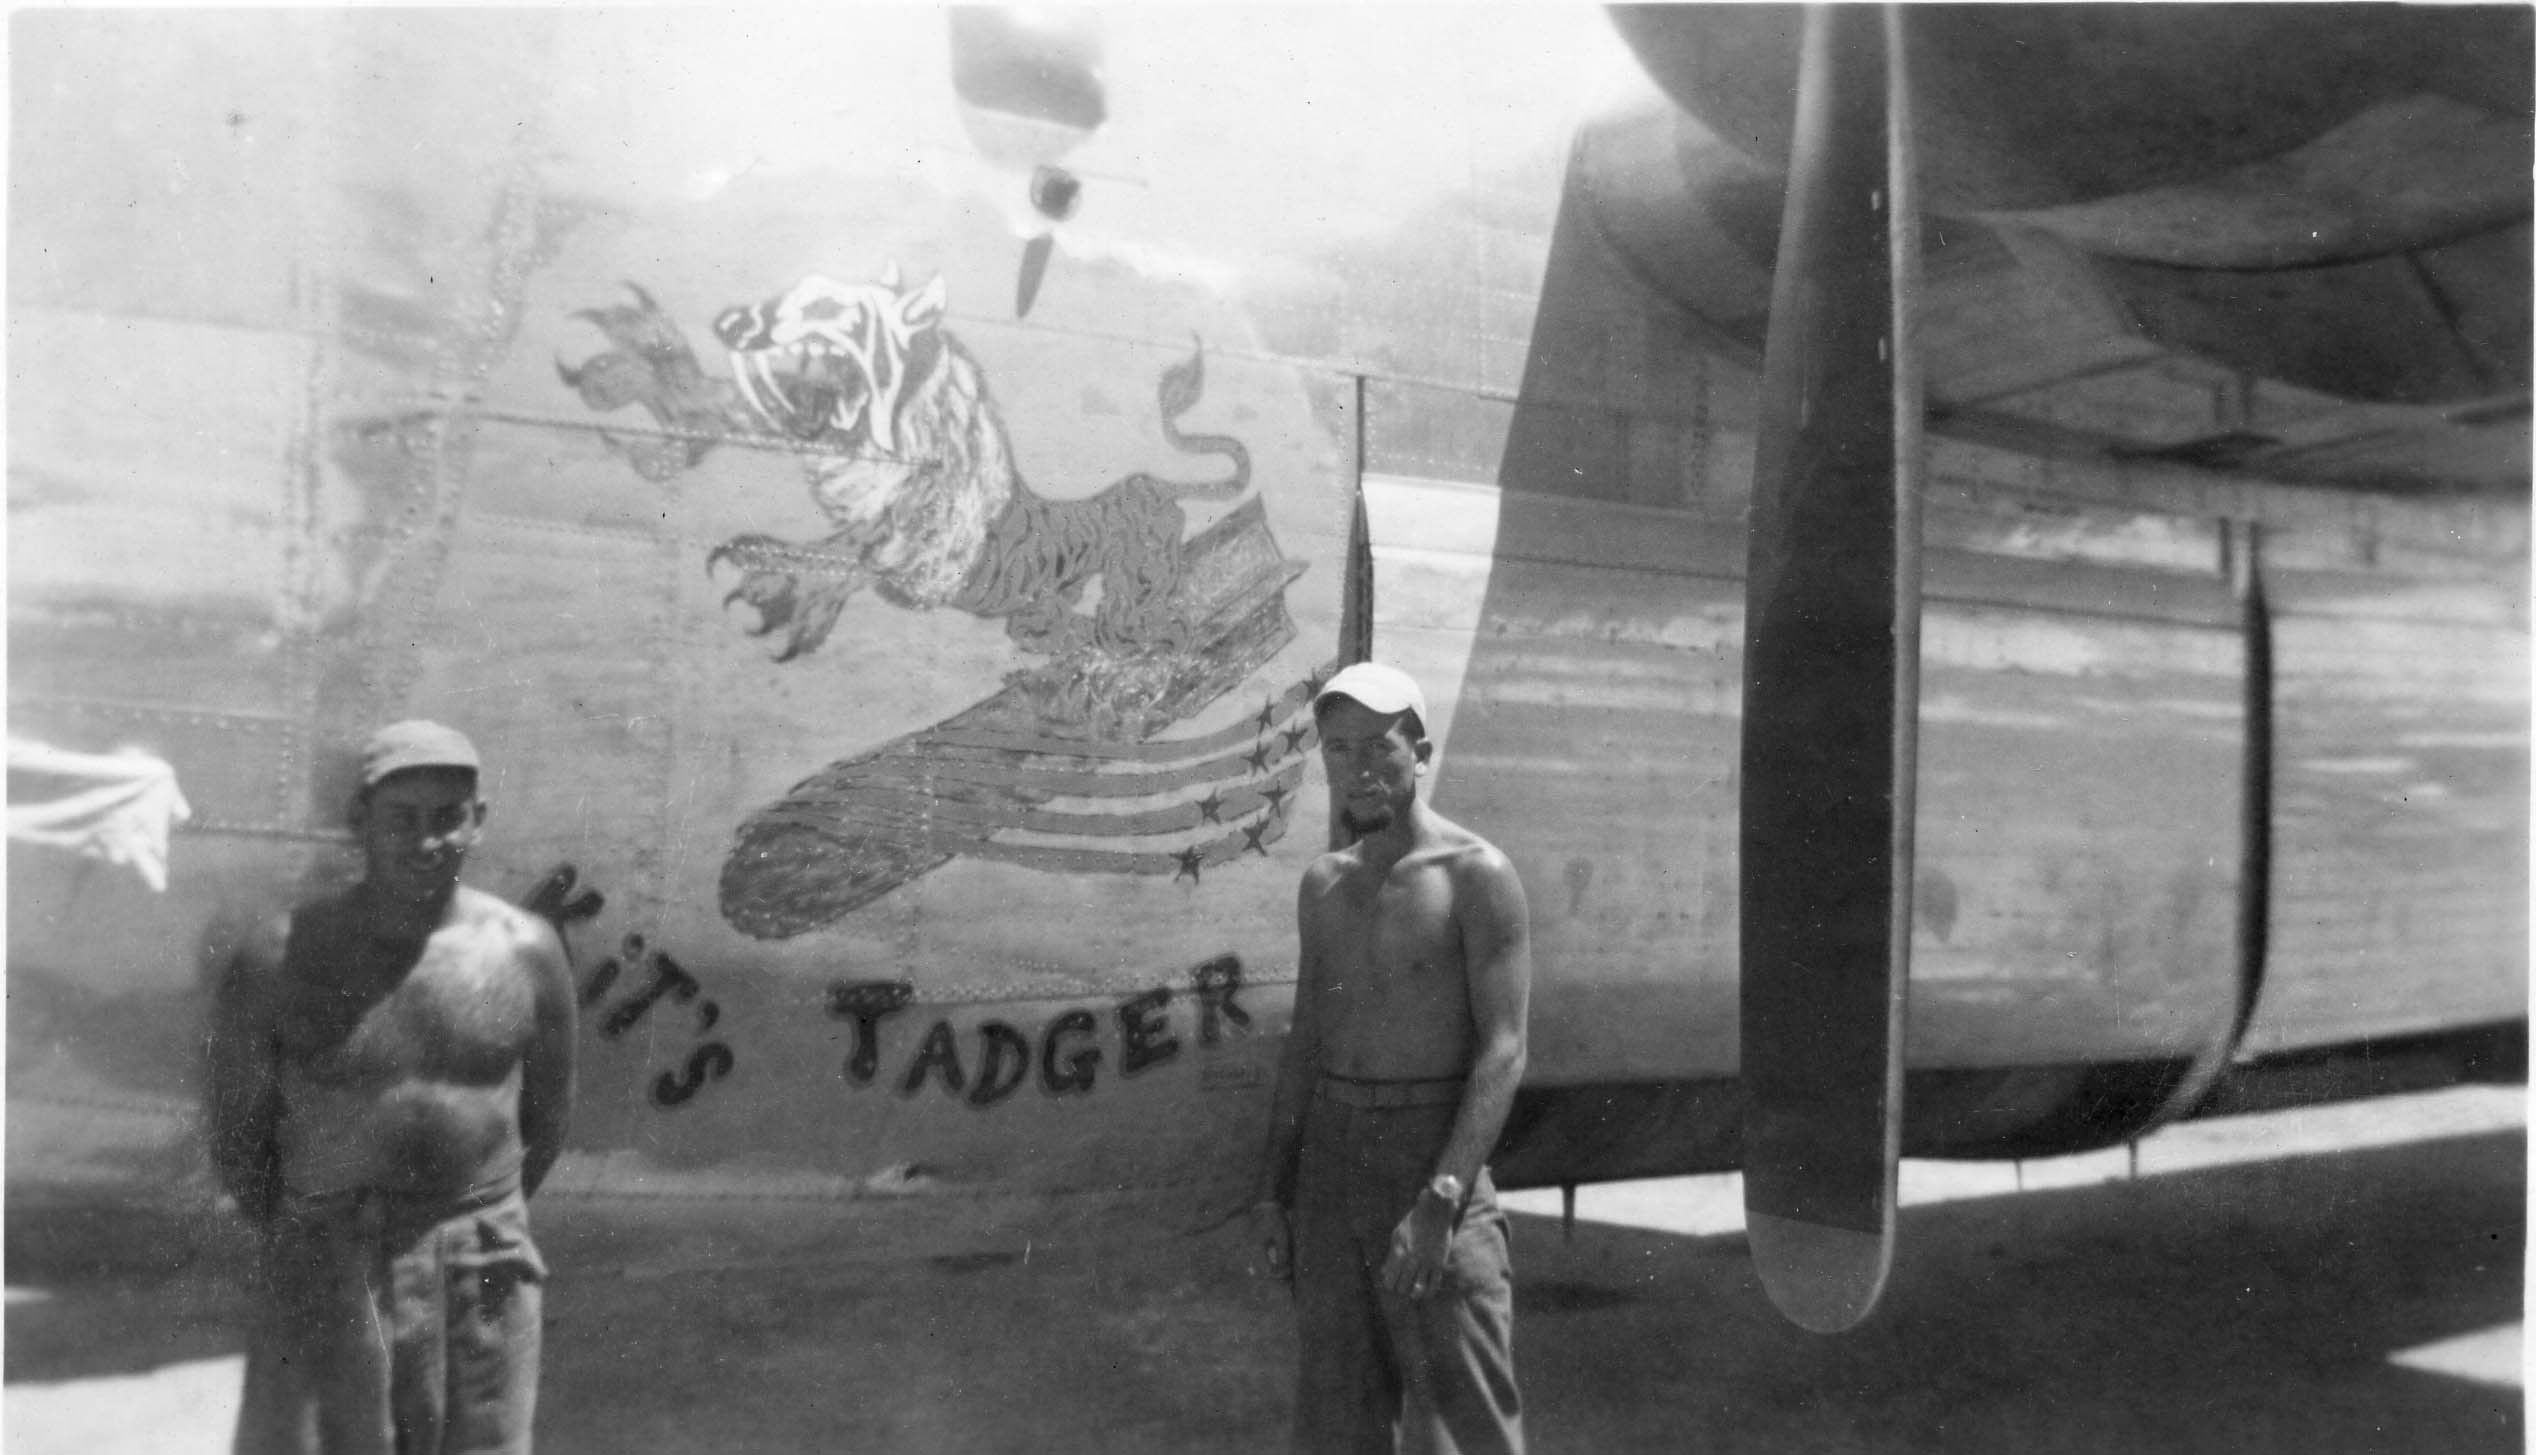 Kit's Tadger : B-24 : 13th Air Force : 307th Bomb Group : 371st Bomb Squadron : Serial #44-40604 : Sharpe 20 (Thomas Sharpe Collection)